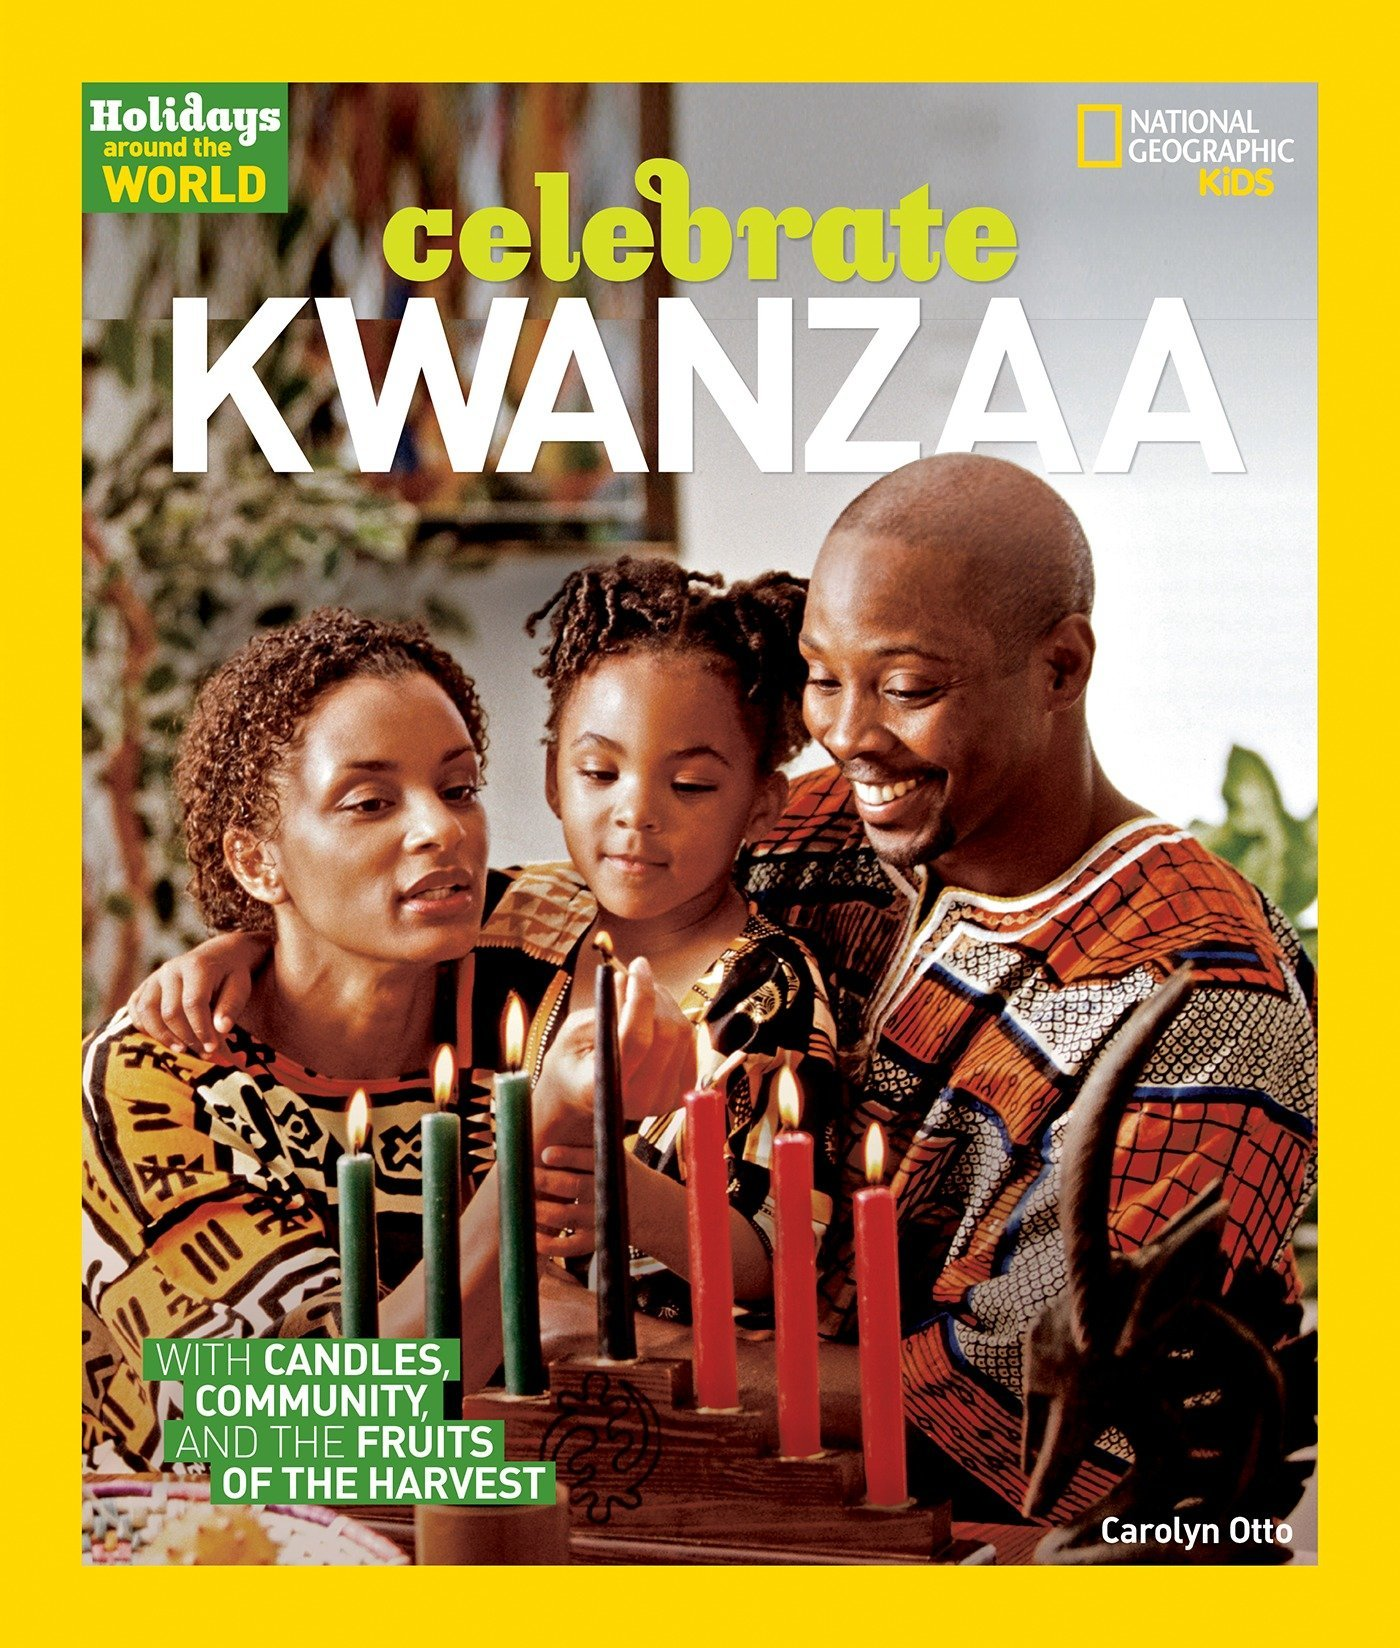 Celebrate Kwanzaa by Carolyn Otto